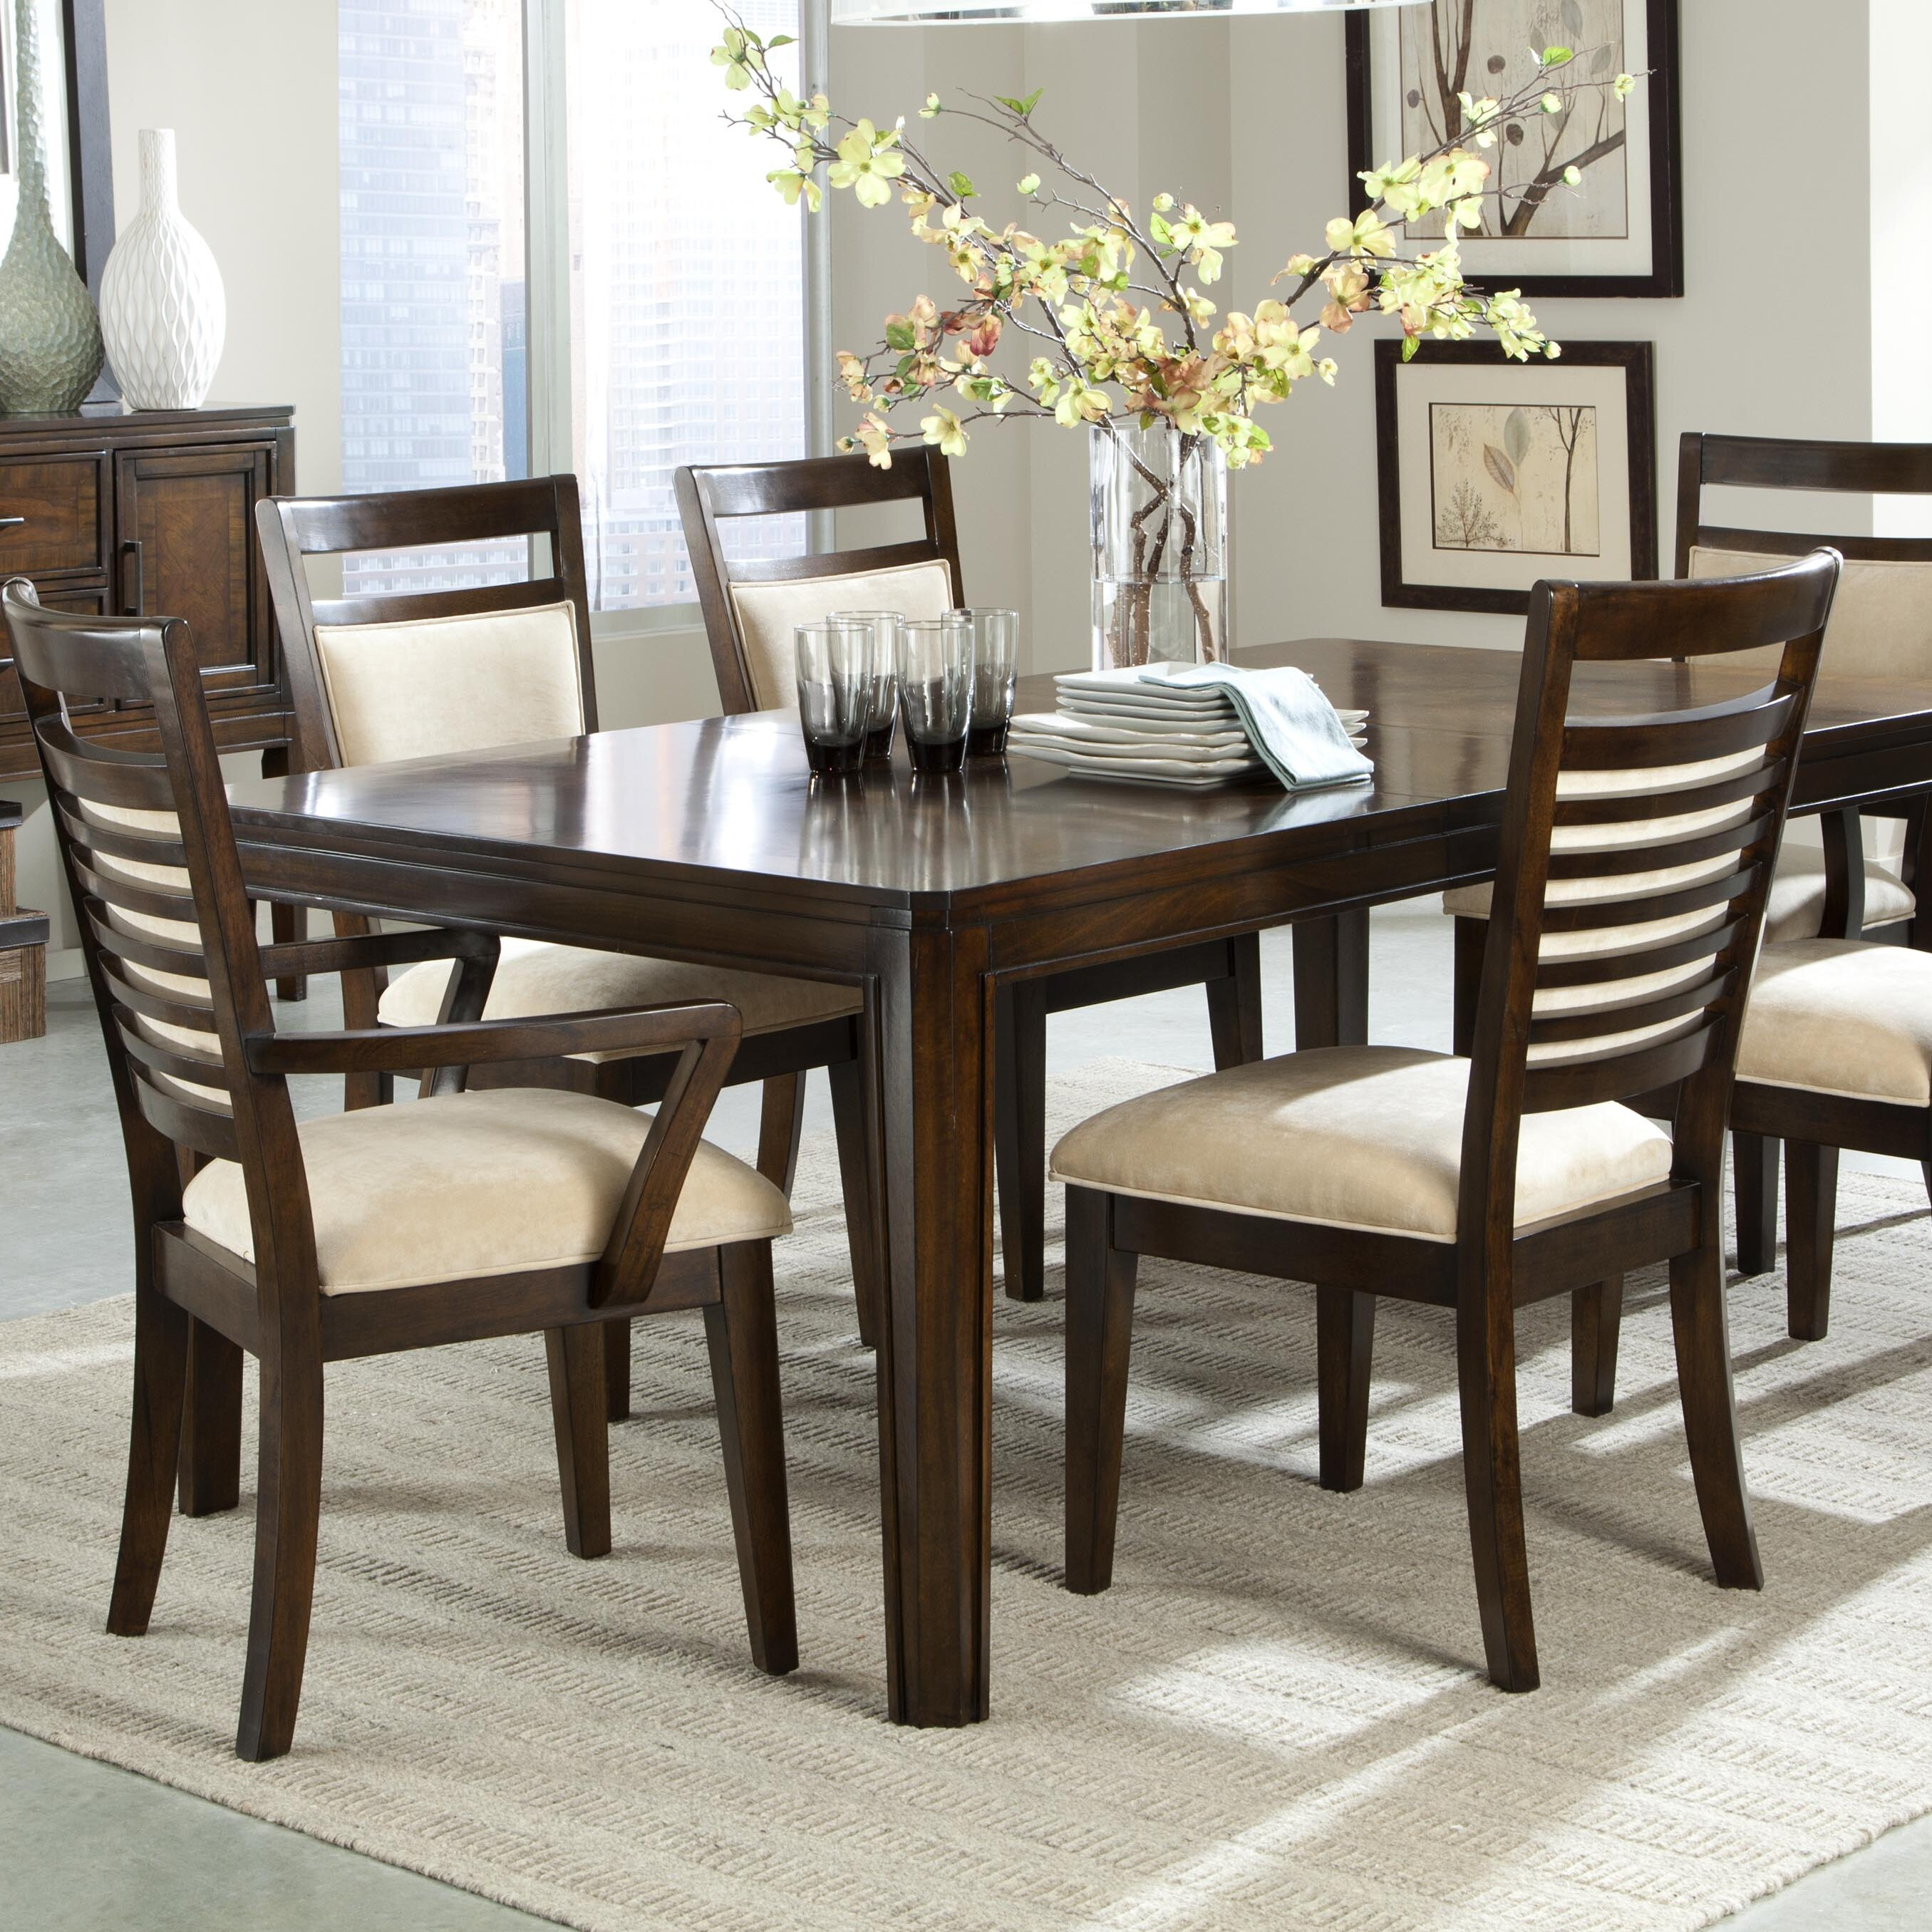 Latitude run bellevue dining table reviews wayfair for Wayfair dining table